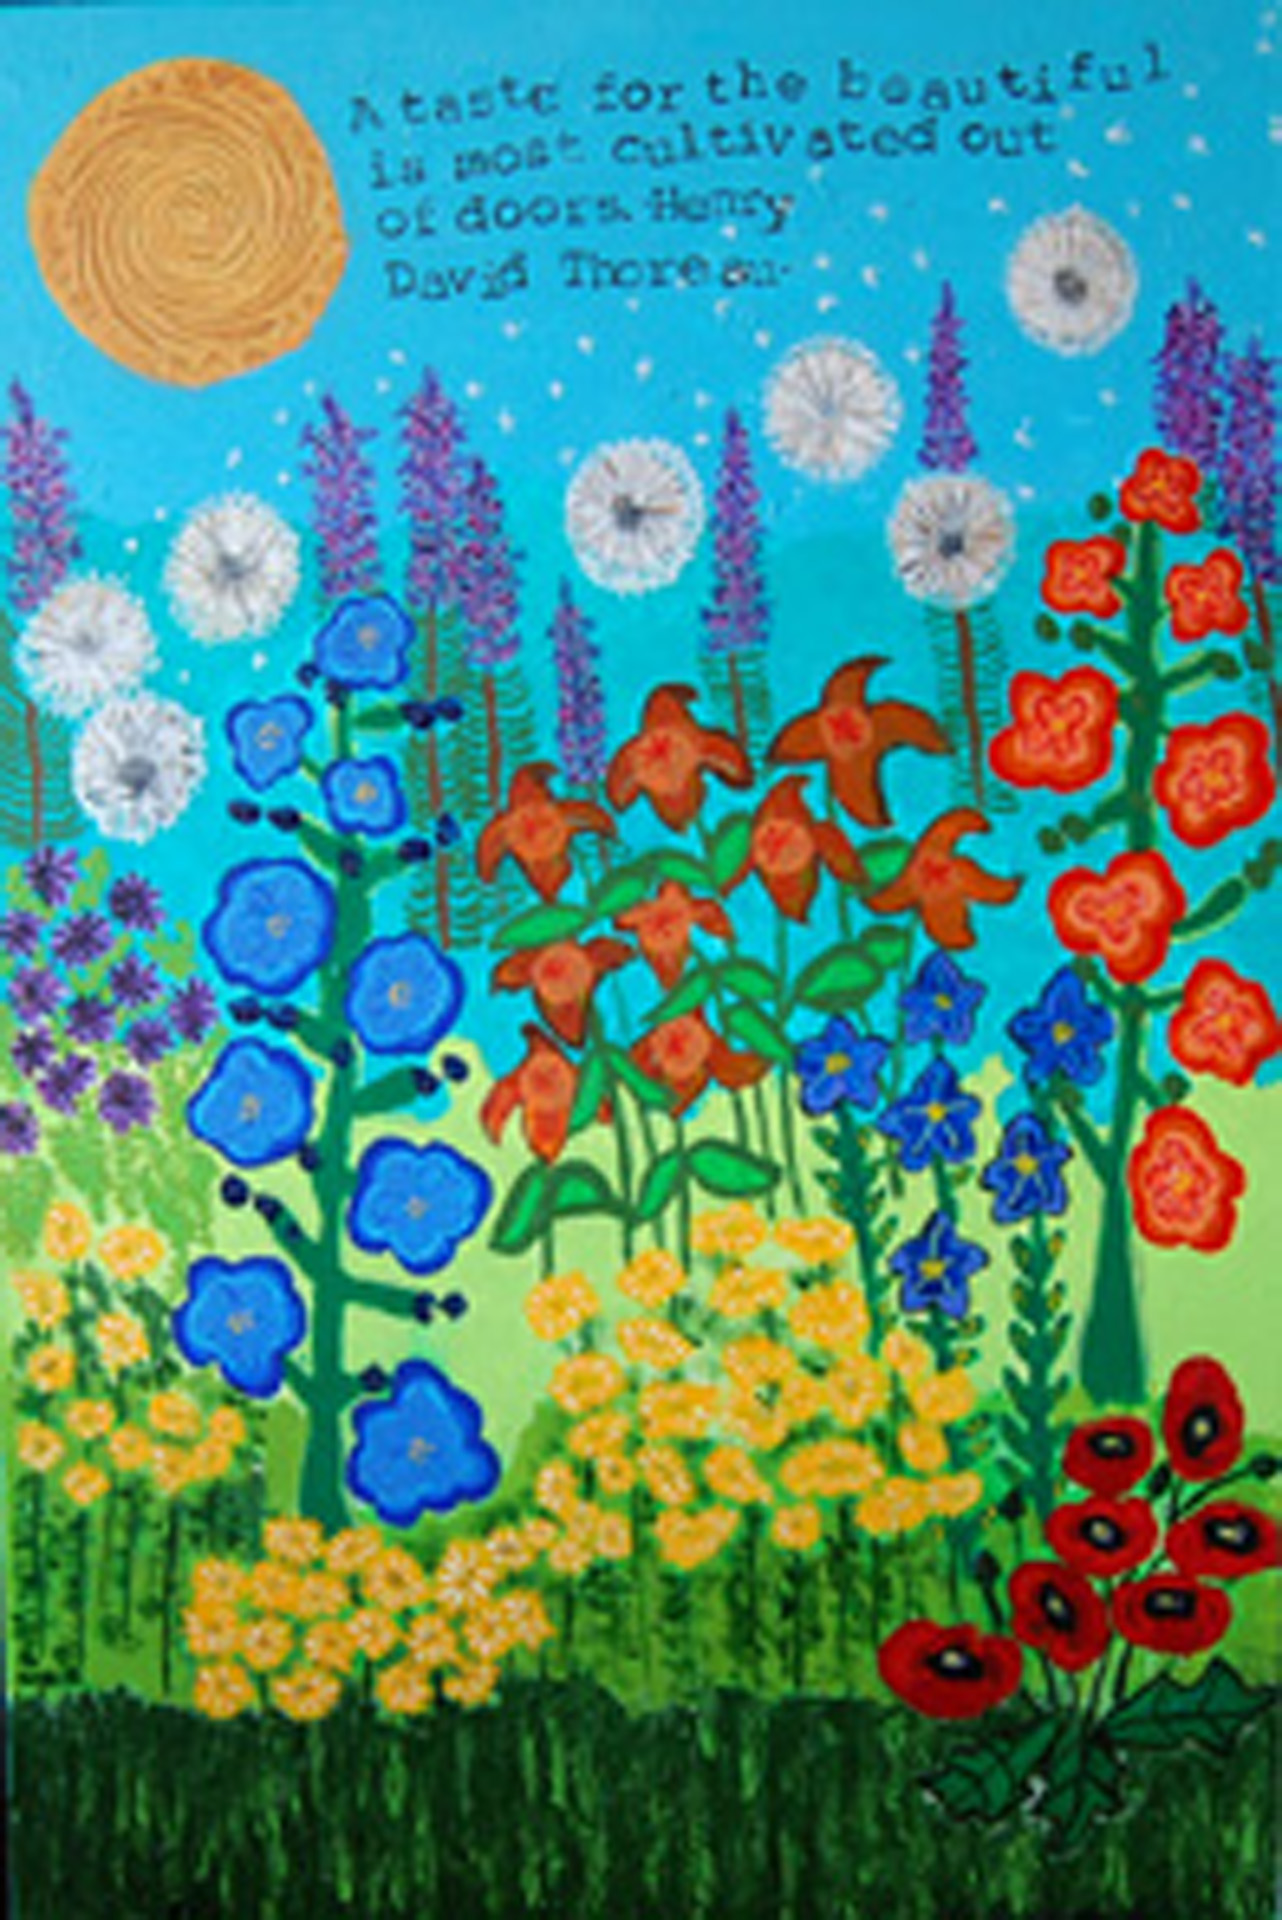 "A colorful garden with hollyhocks, daylilies, coreopsis, lavendar sage, balloon flowers, yellow sun, blue sky and green grass. A Henry David Thoreau quote of ""A taste for the beautiful is most cultivated out of doors."